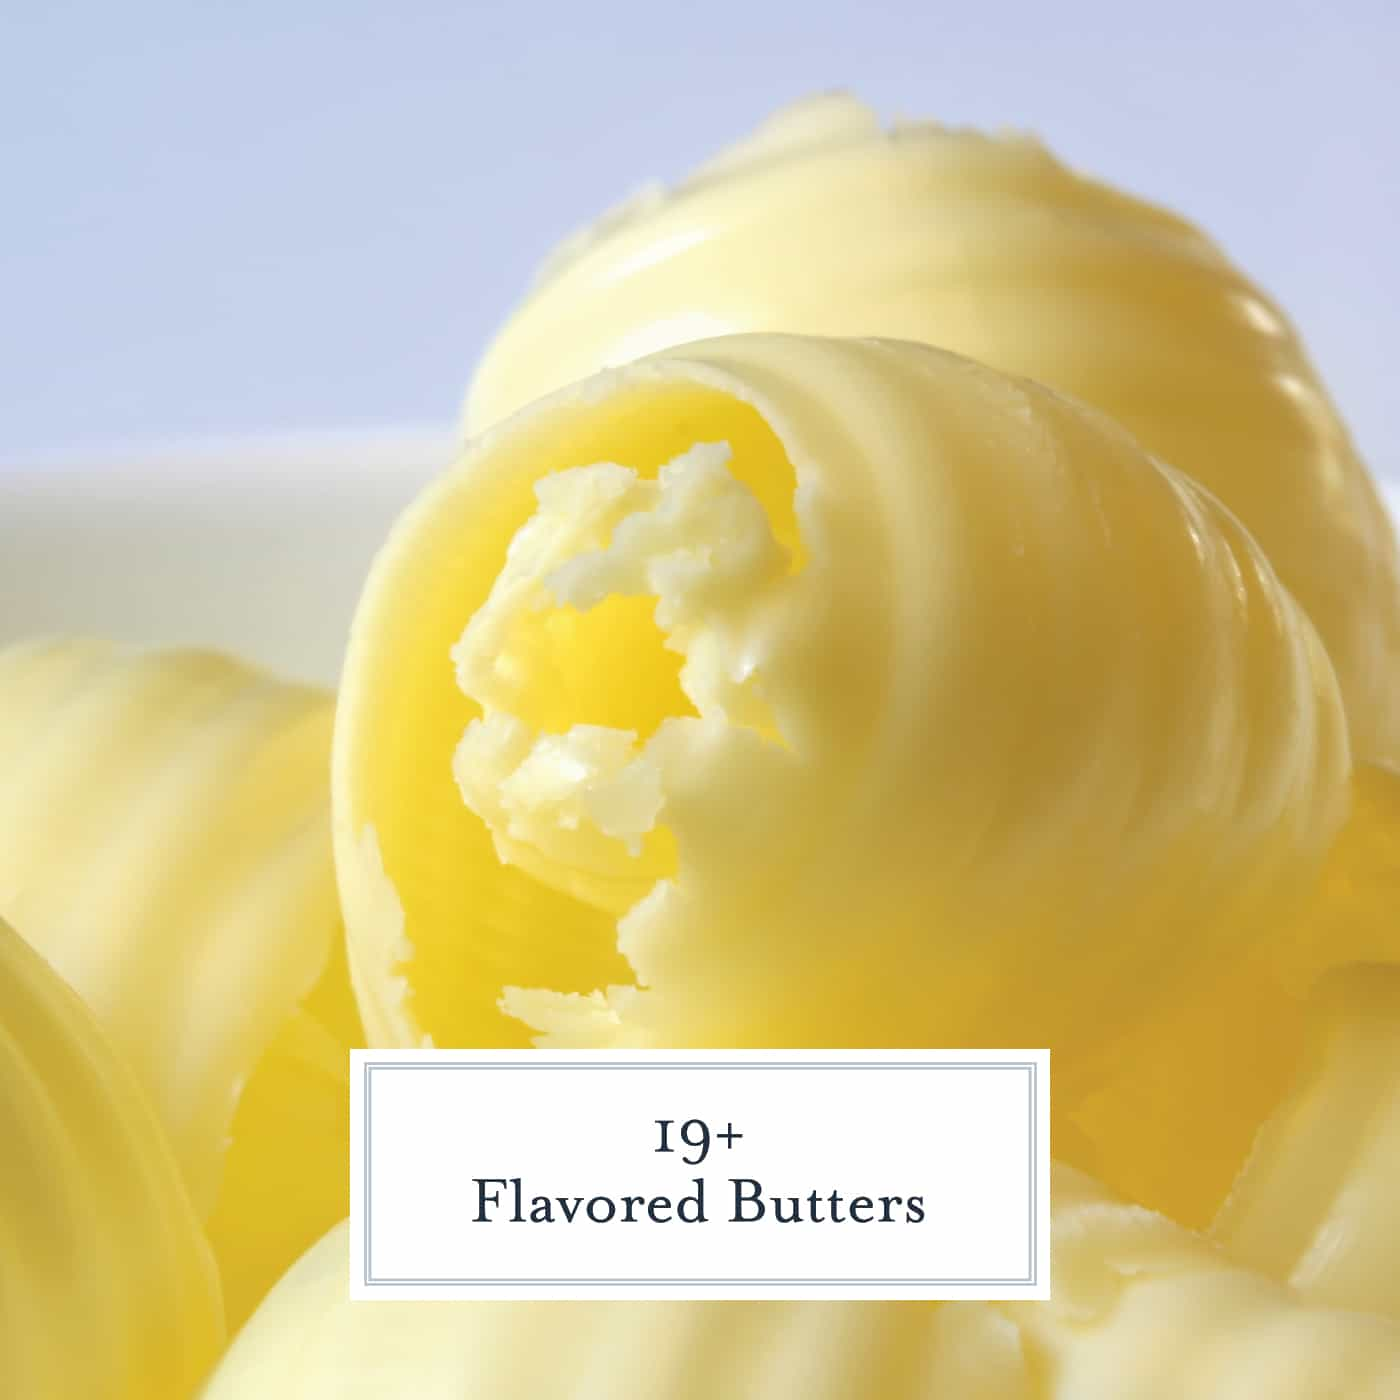 19+ Flavored Butters- Creating flavored butter adds sophistication to any meal. Skip the plain old butter and opt for a creative and unique compound butter. The perfect compound butter for steak, baked potatoes and more! #compoundbutter #flavoredbutter www.savoryexperiments.com